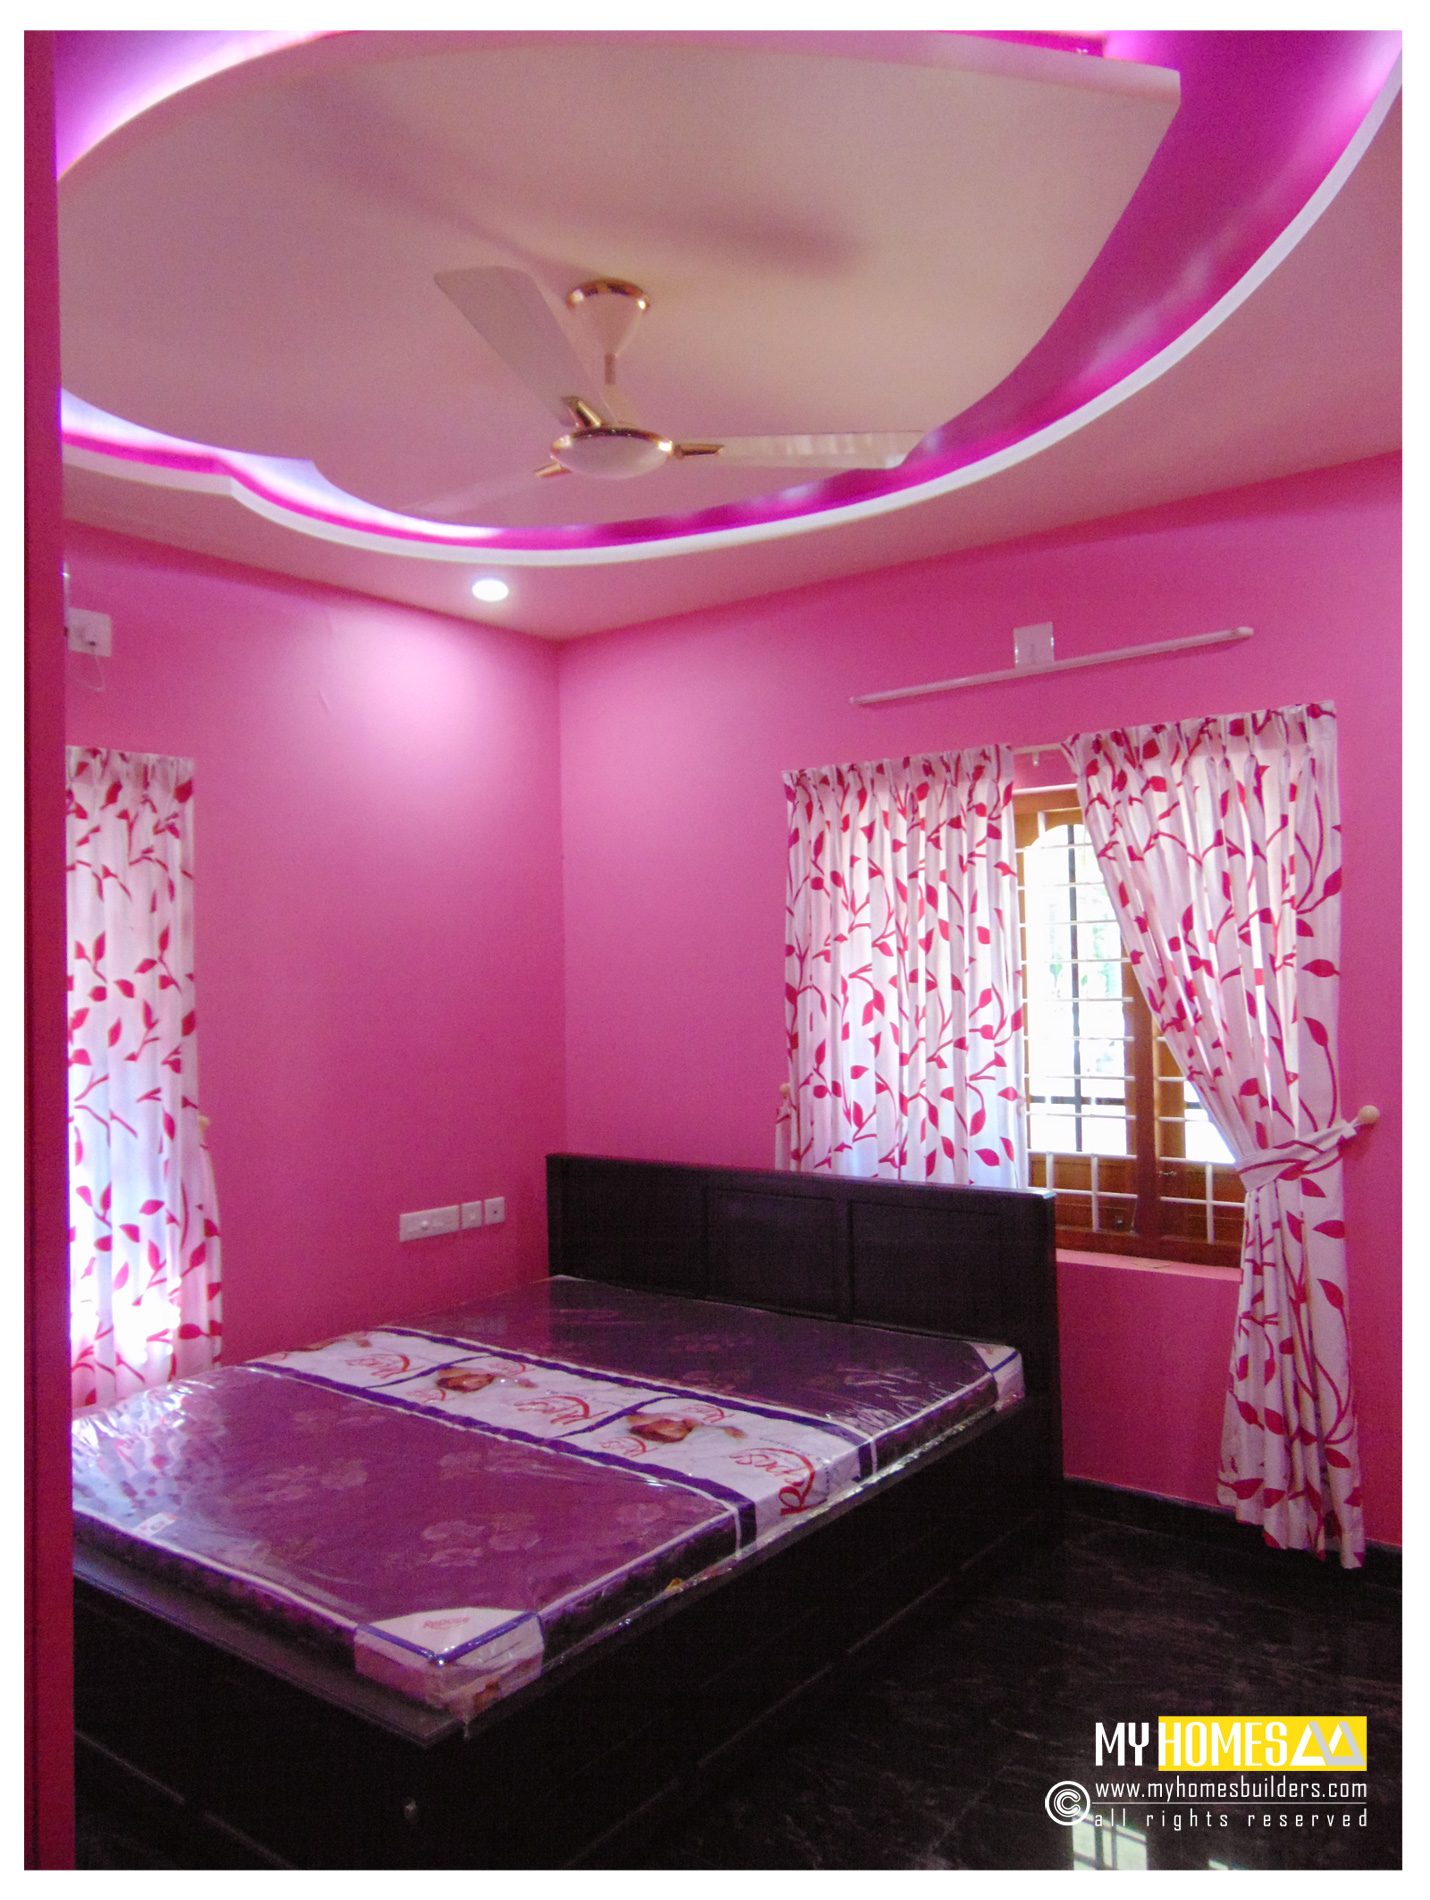 Simple style kerala bedroom designs ideas for home interior - Bedroom designers ...